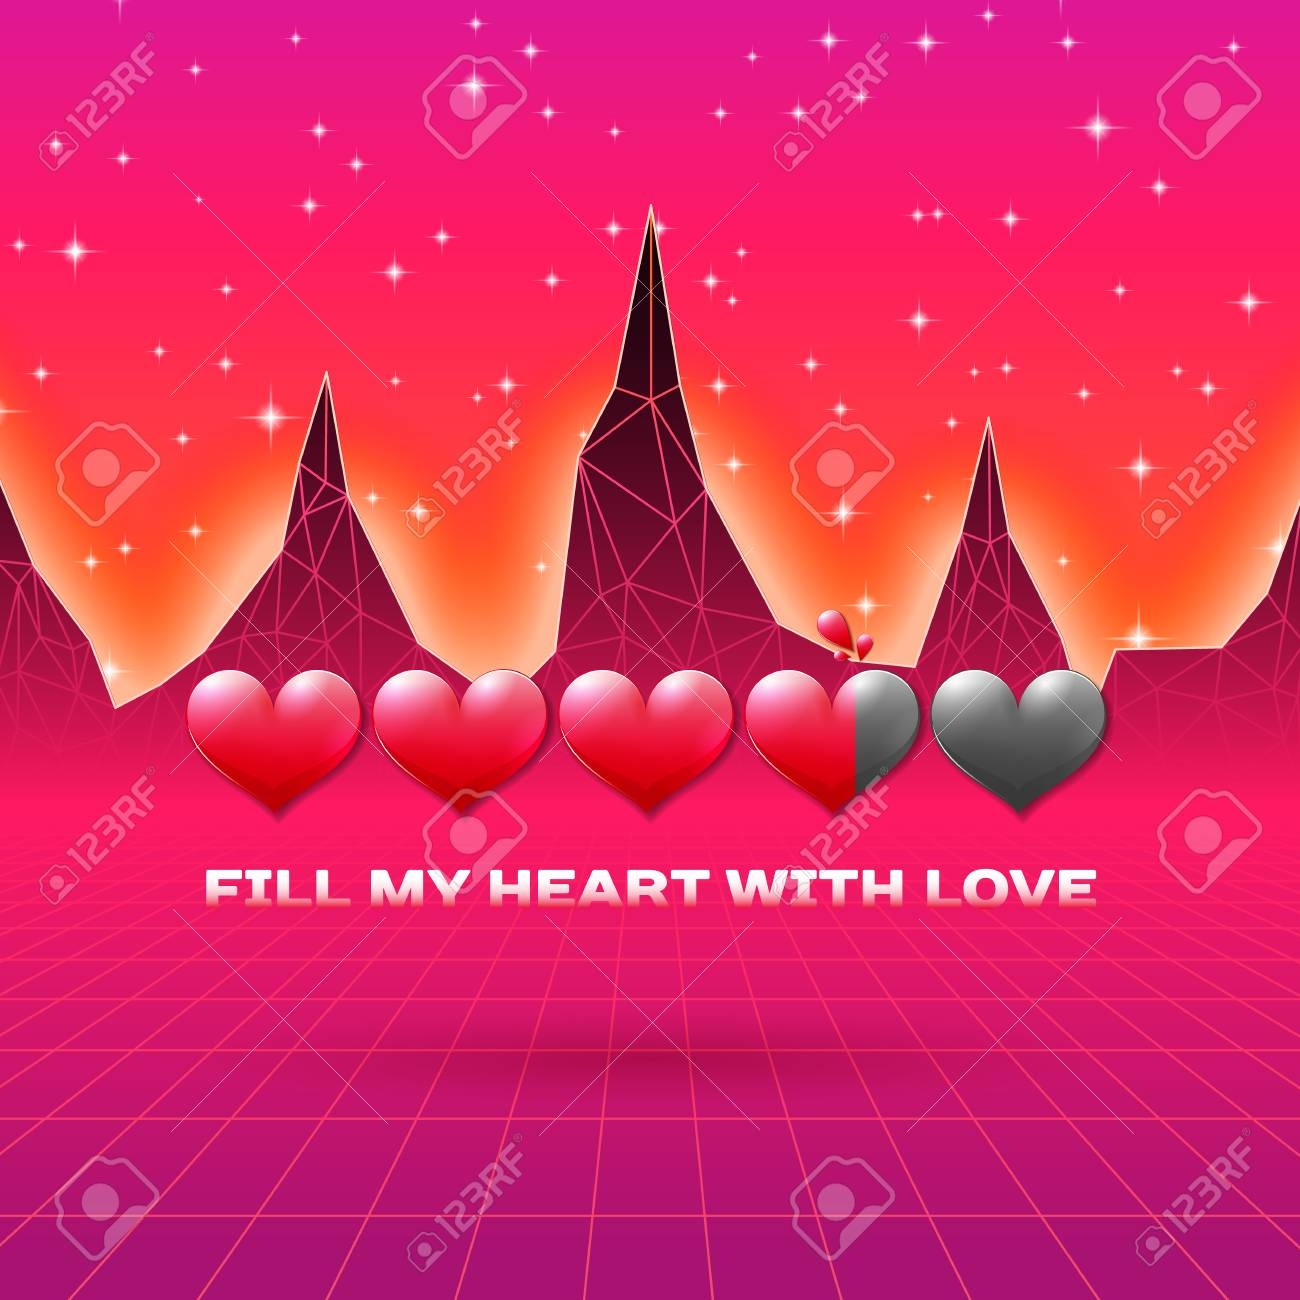 All My Heart Retro Gaming Valentines Card